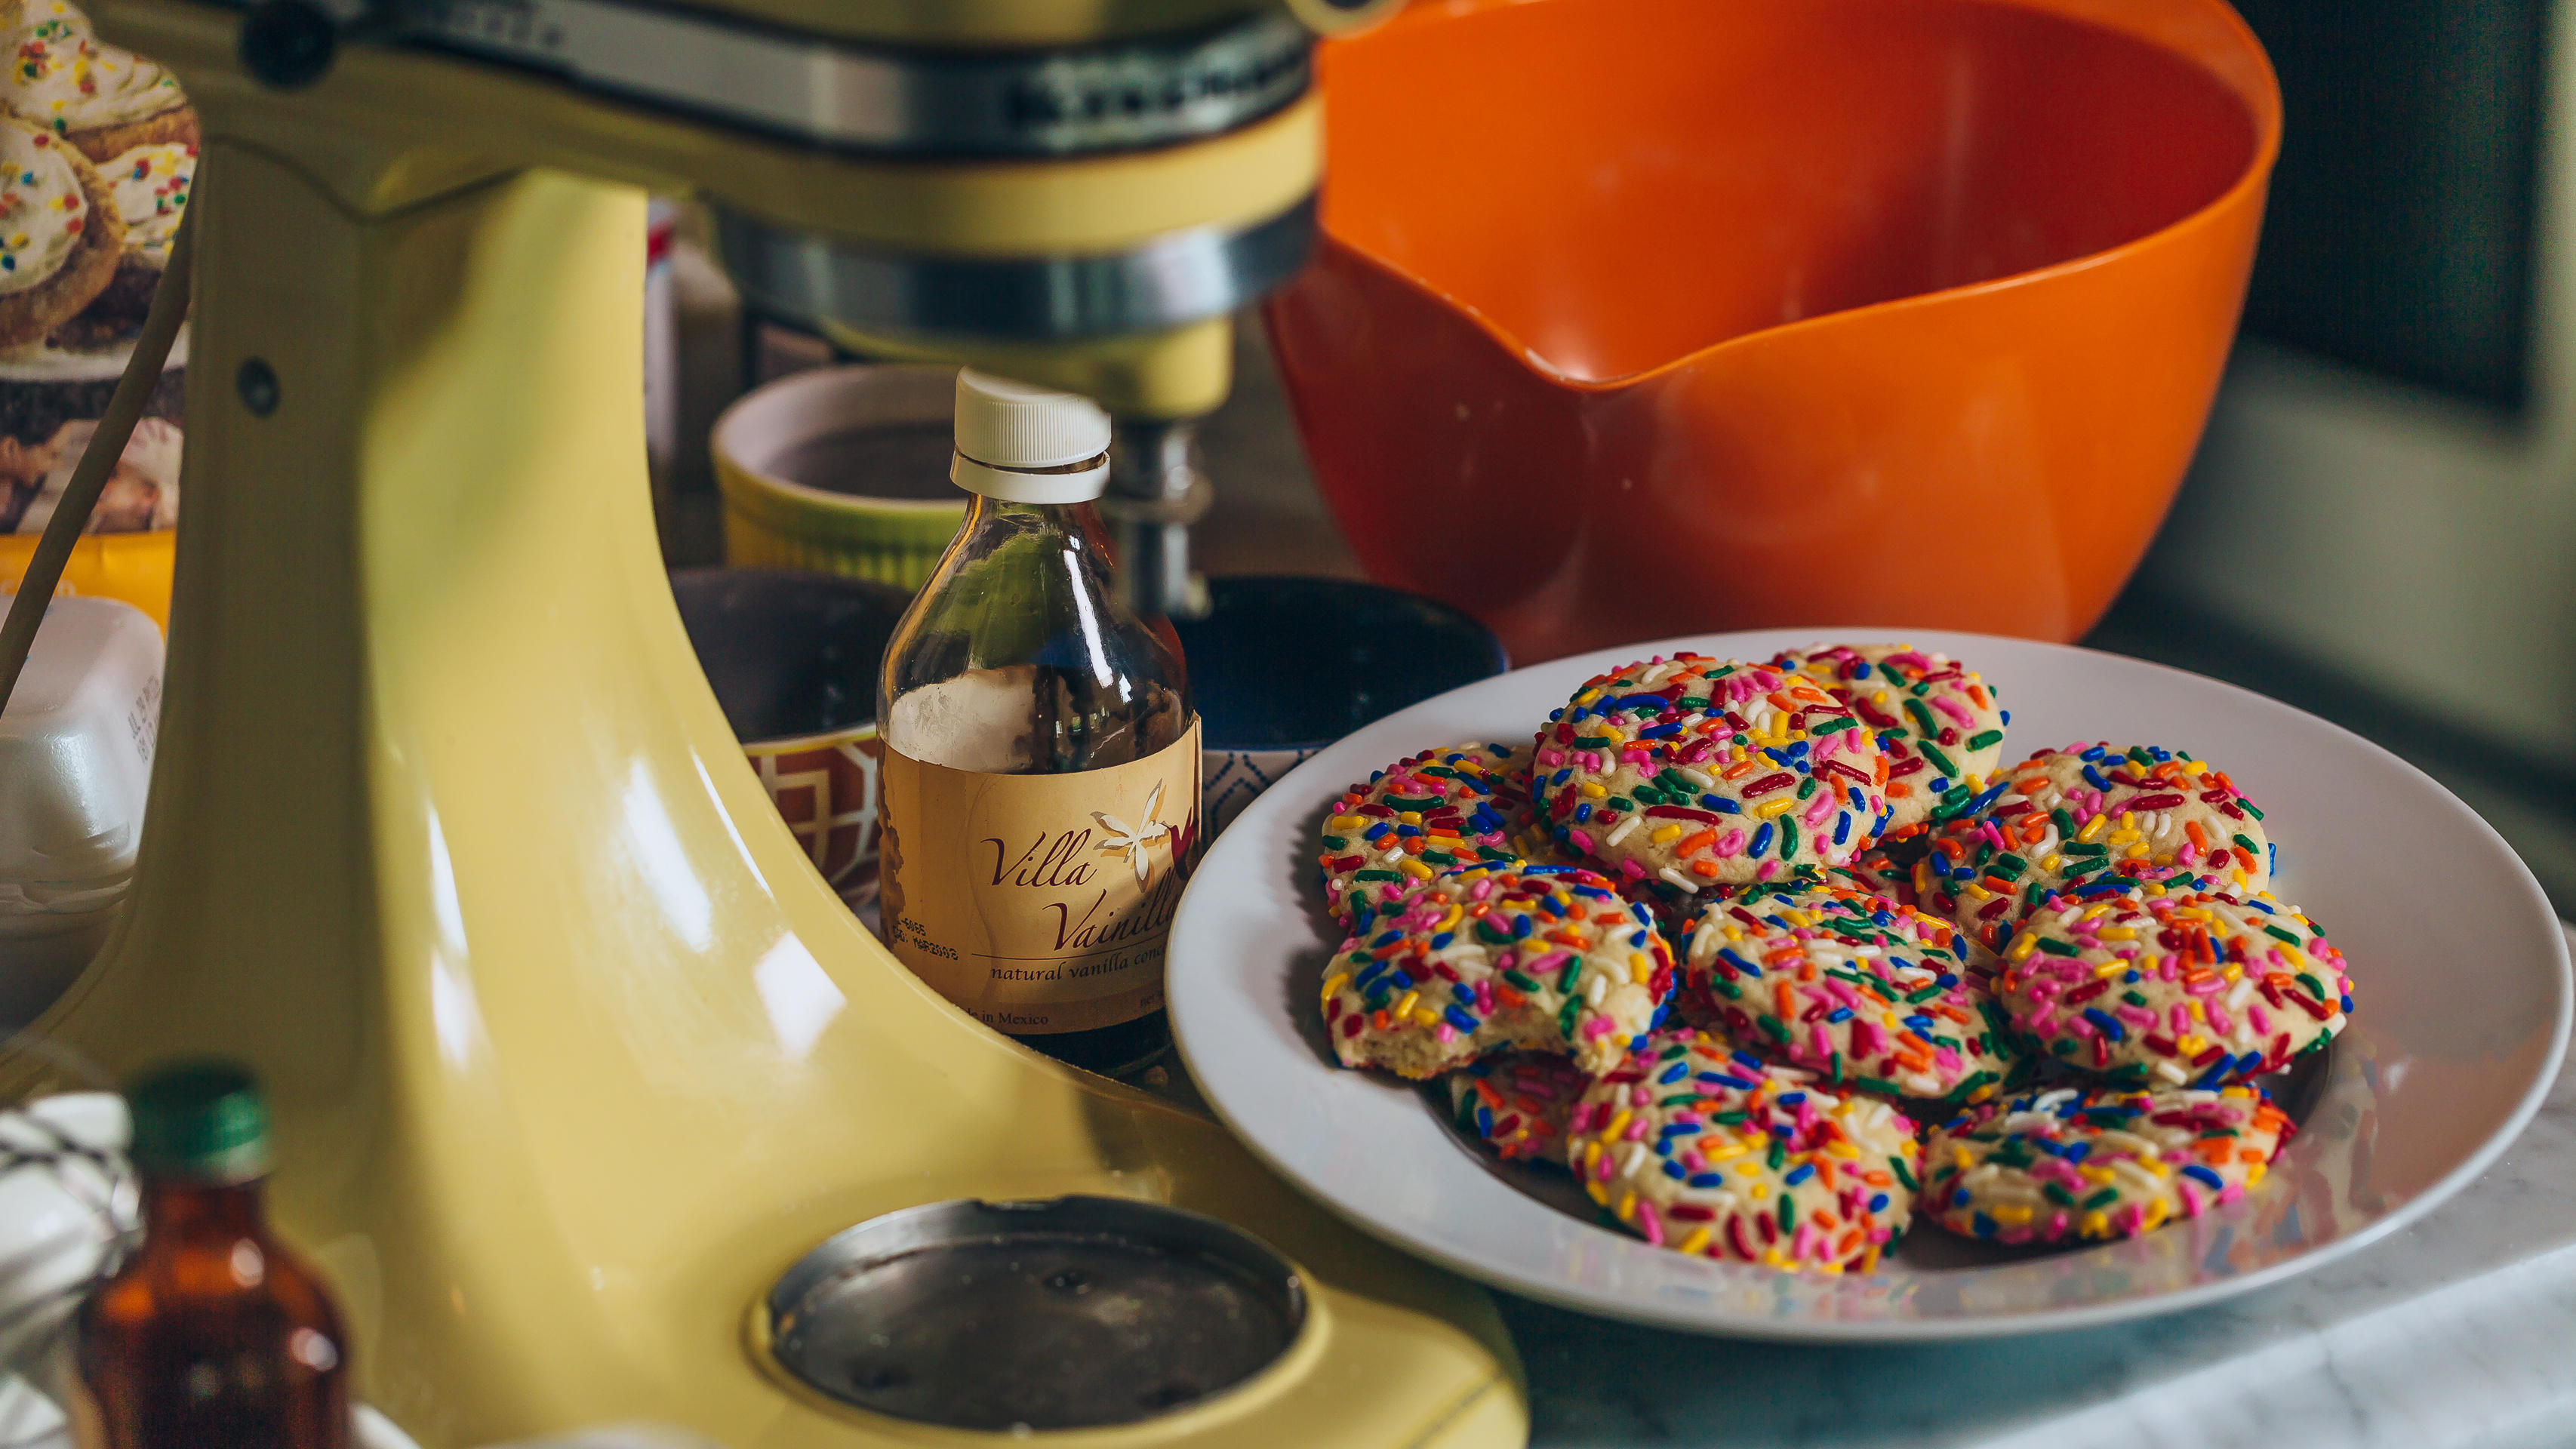 Video: The KitchenAid stand mixer makes its mark on home baking